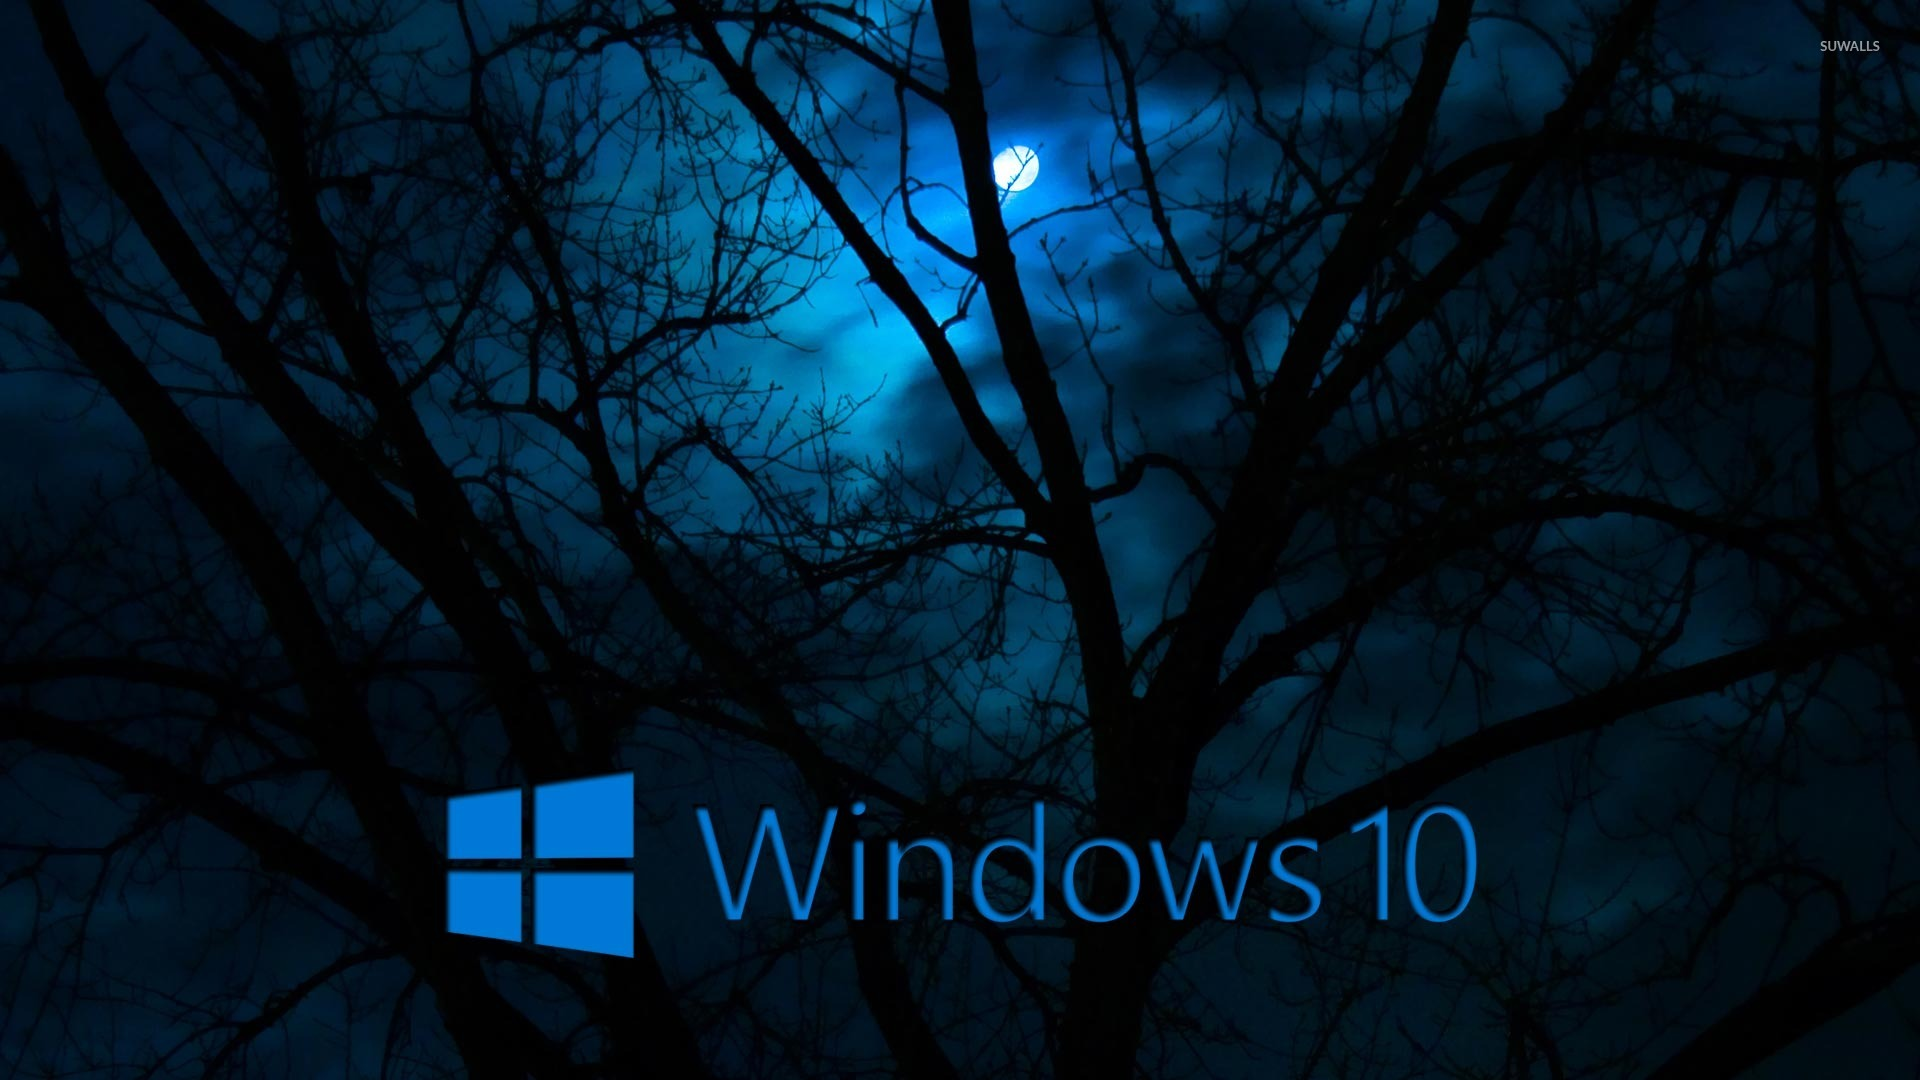 windows 10 in the cloudy night 2 wallpaper computer